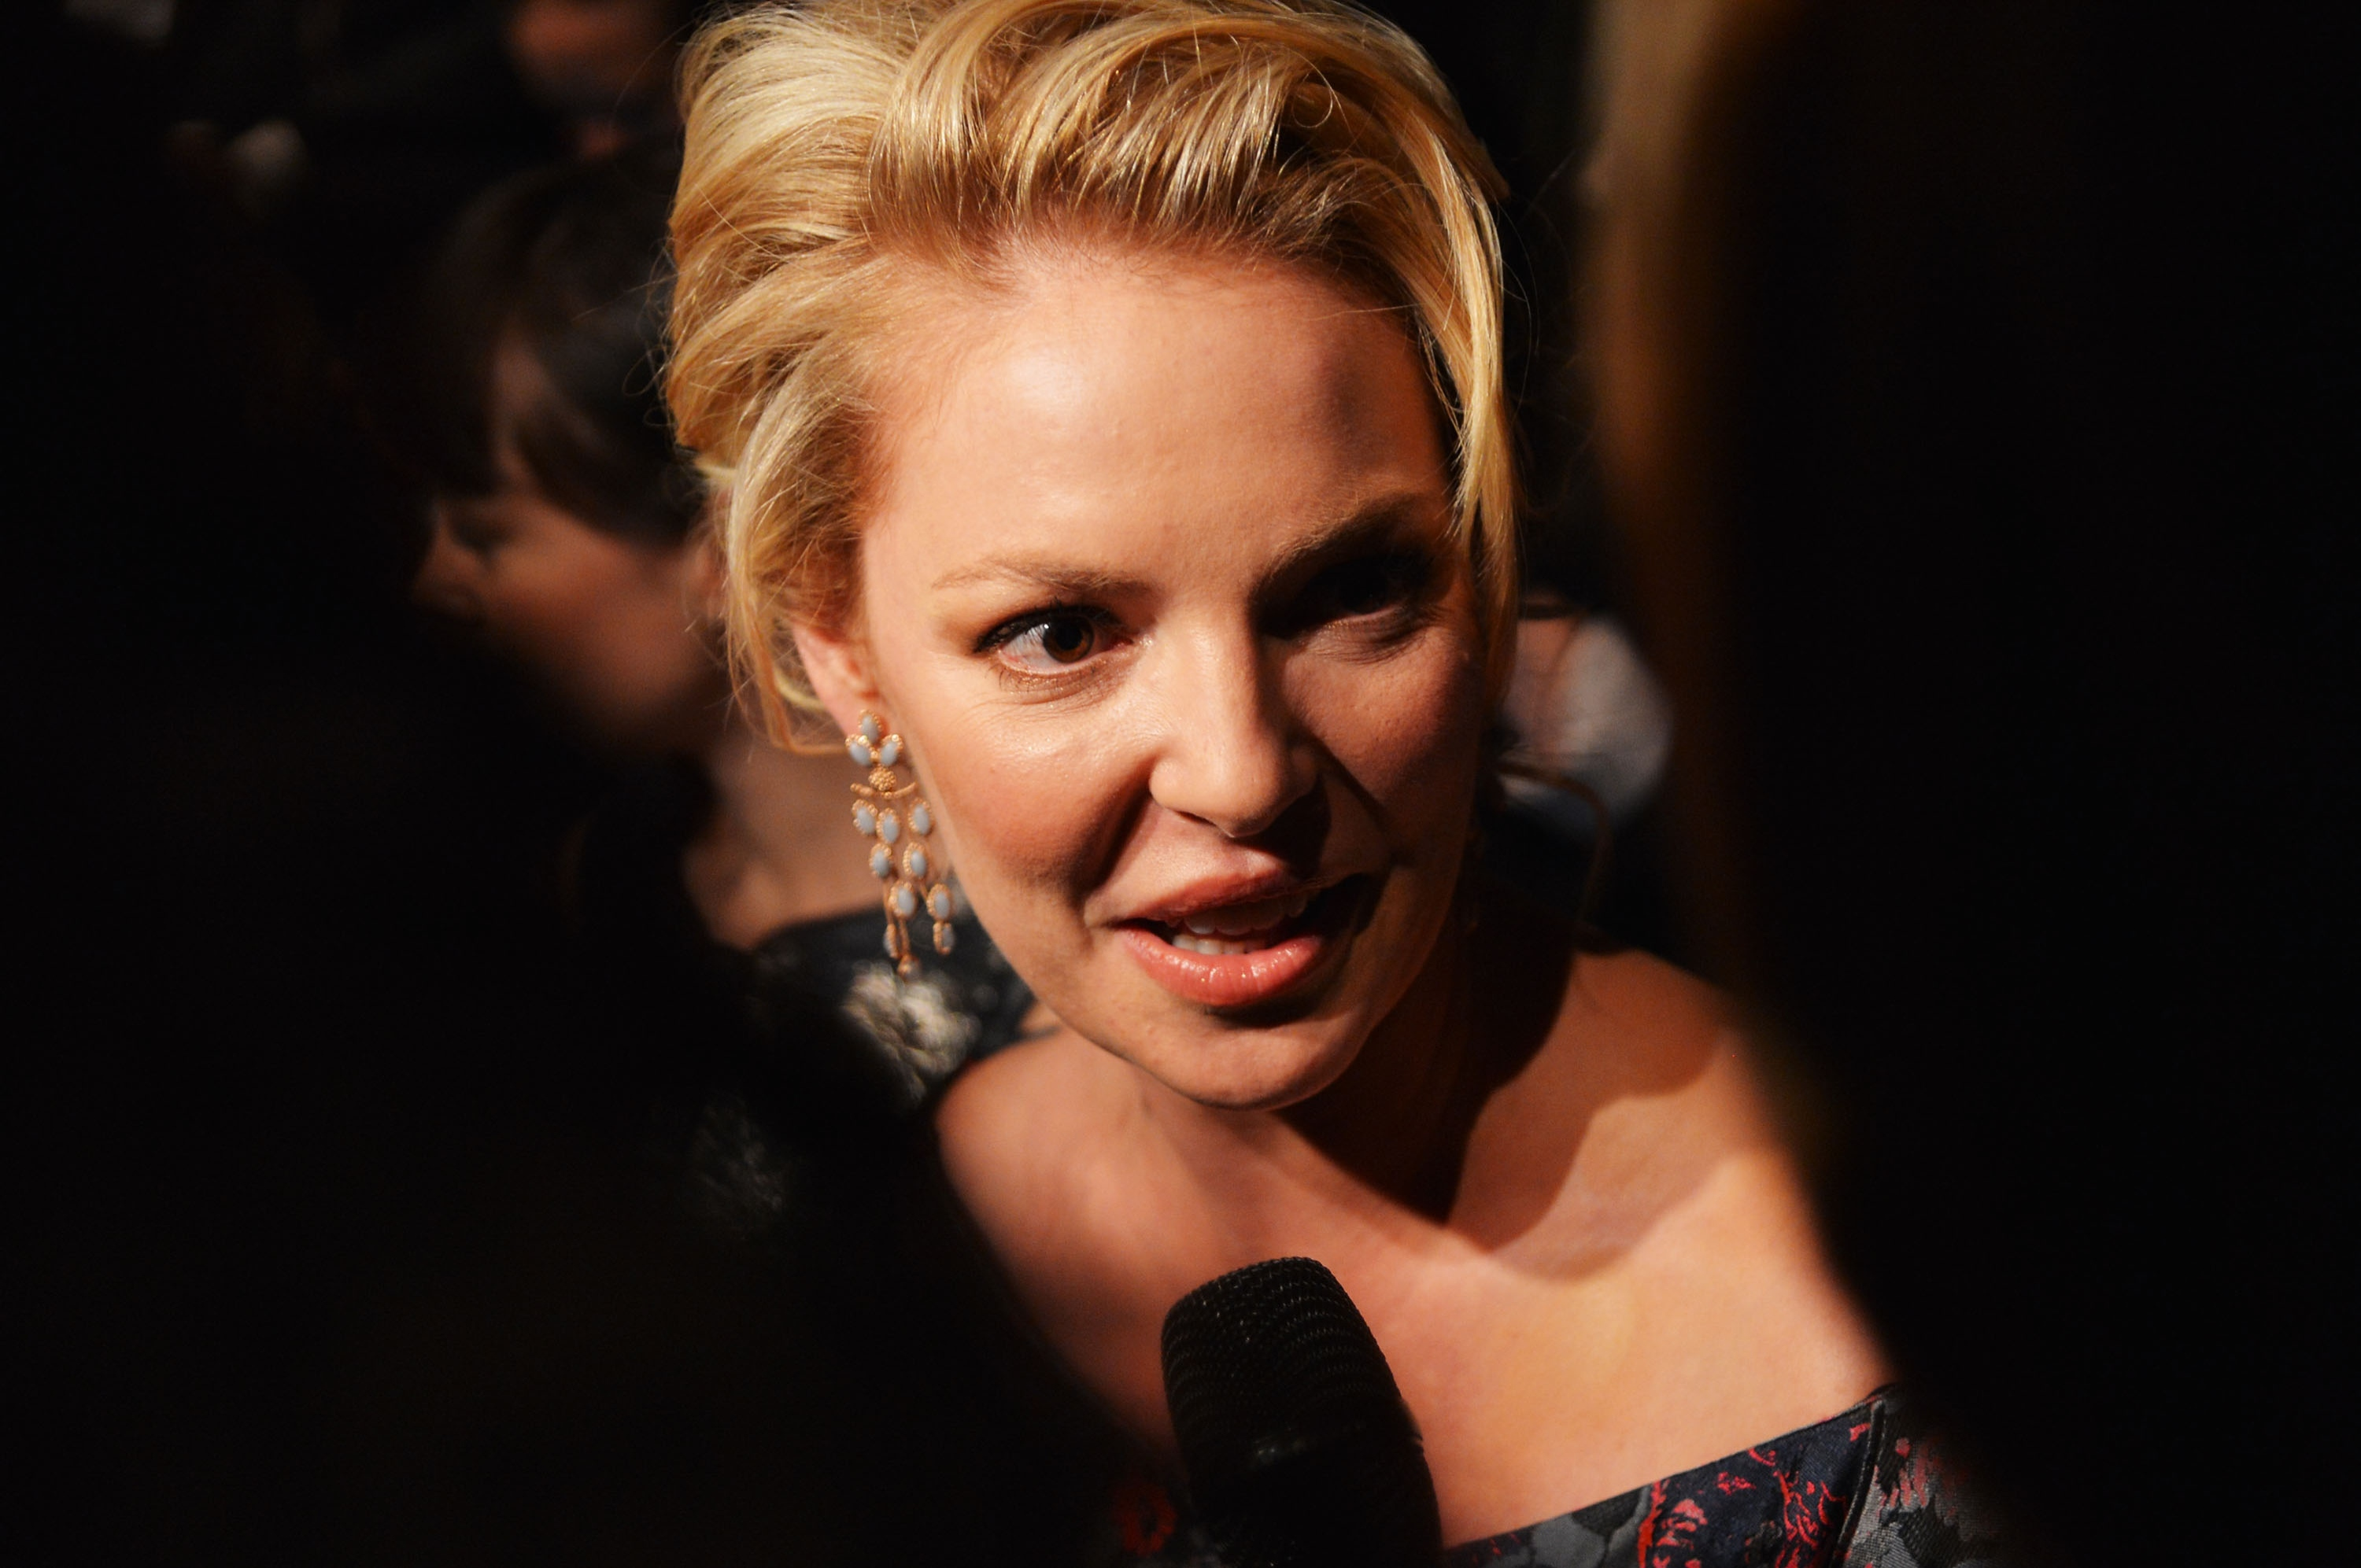 From 'Knocked Up' to Nyquil Ads, Can TV Save Katherine Heigl's Career?